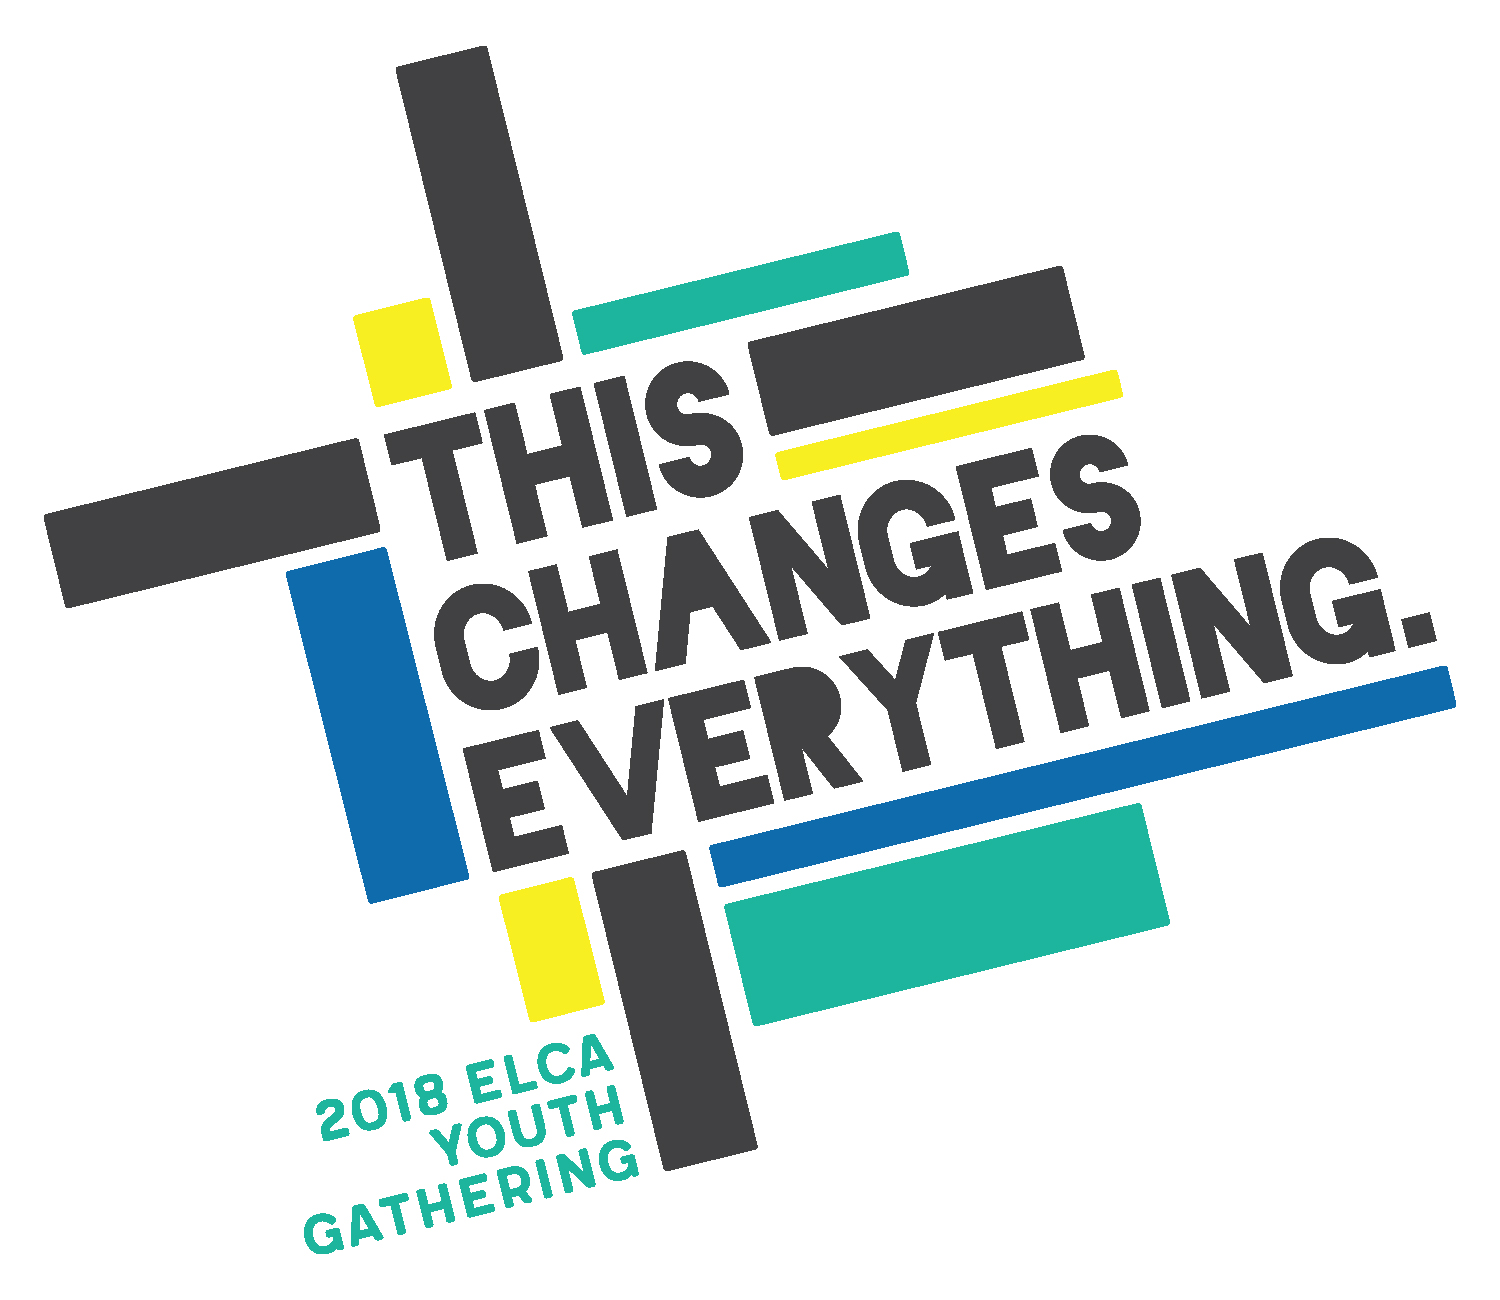 ELCA Youth Gathering 2018